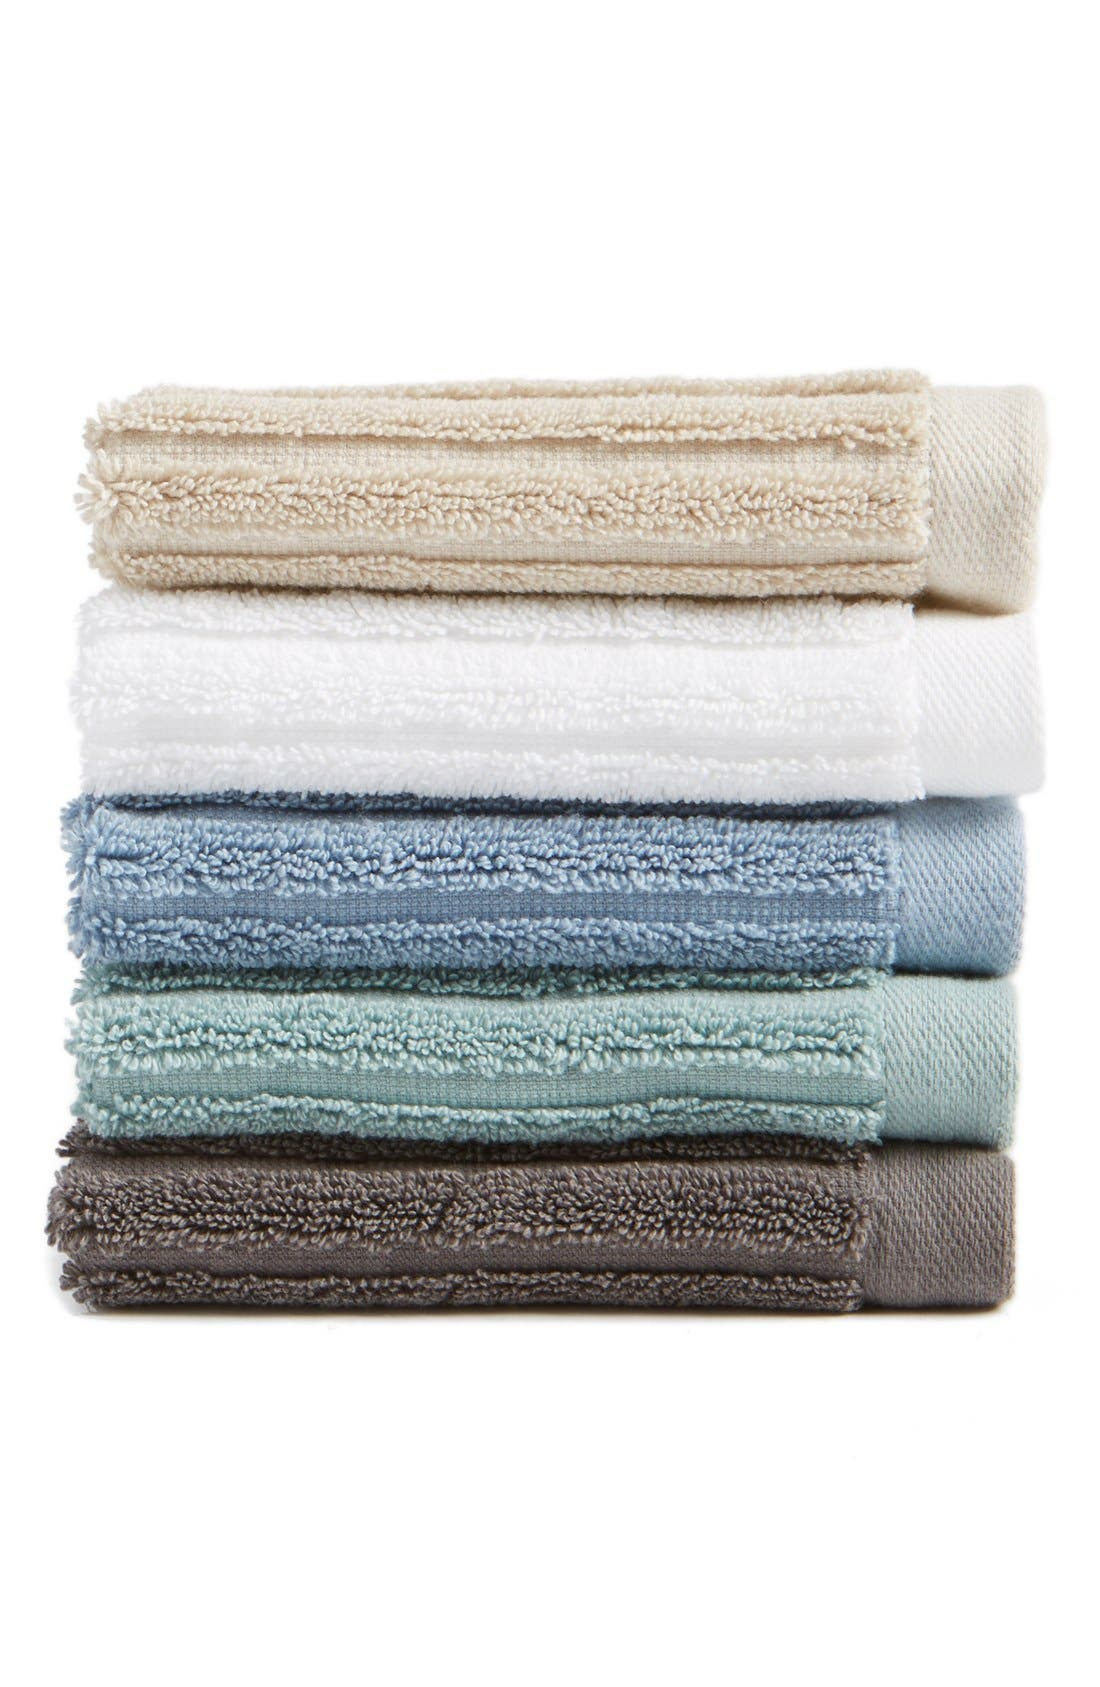 Main Image - Nordstrom at Home 'Modern Rib' Wash Towel (2 for $12)